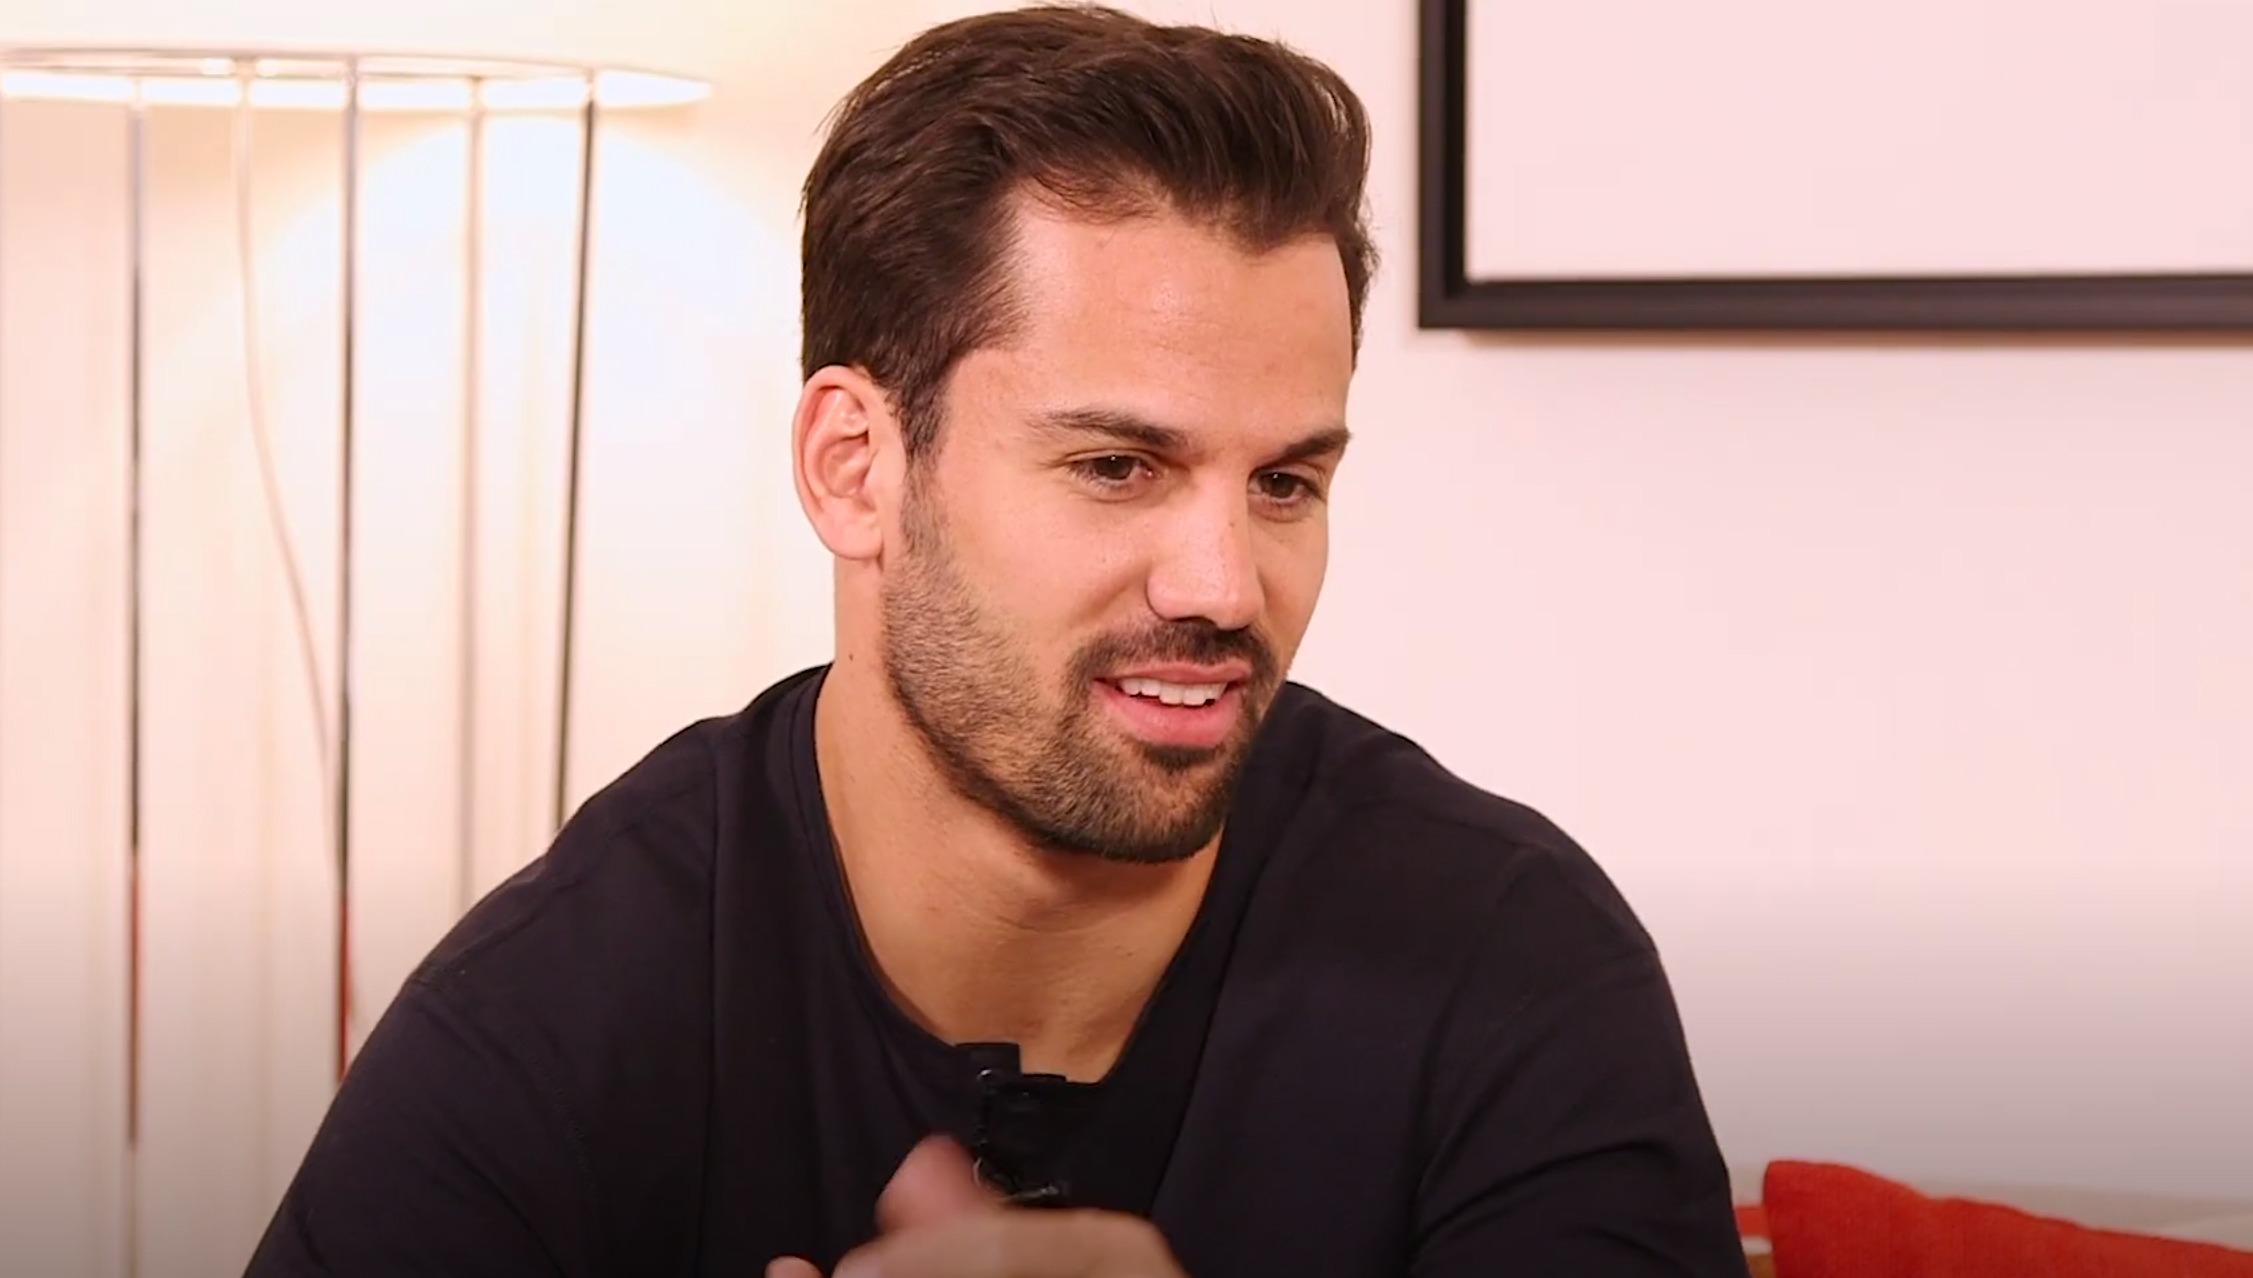 Eric-Decker-Shares-His-Parenthood-Dos-and-Don'ts-2